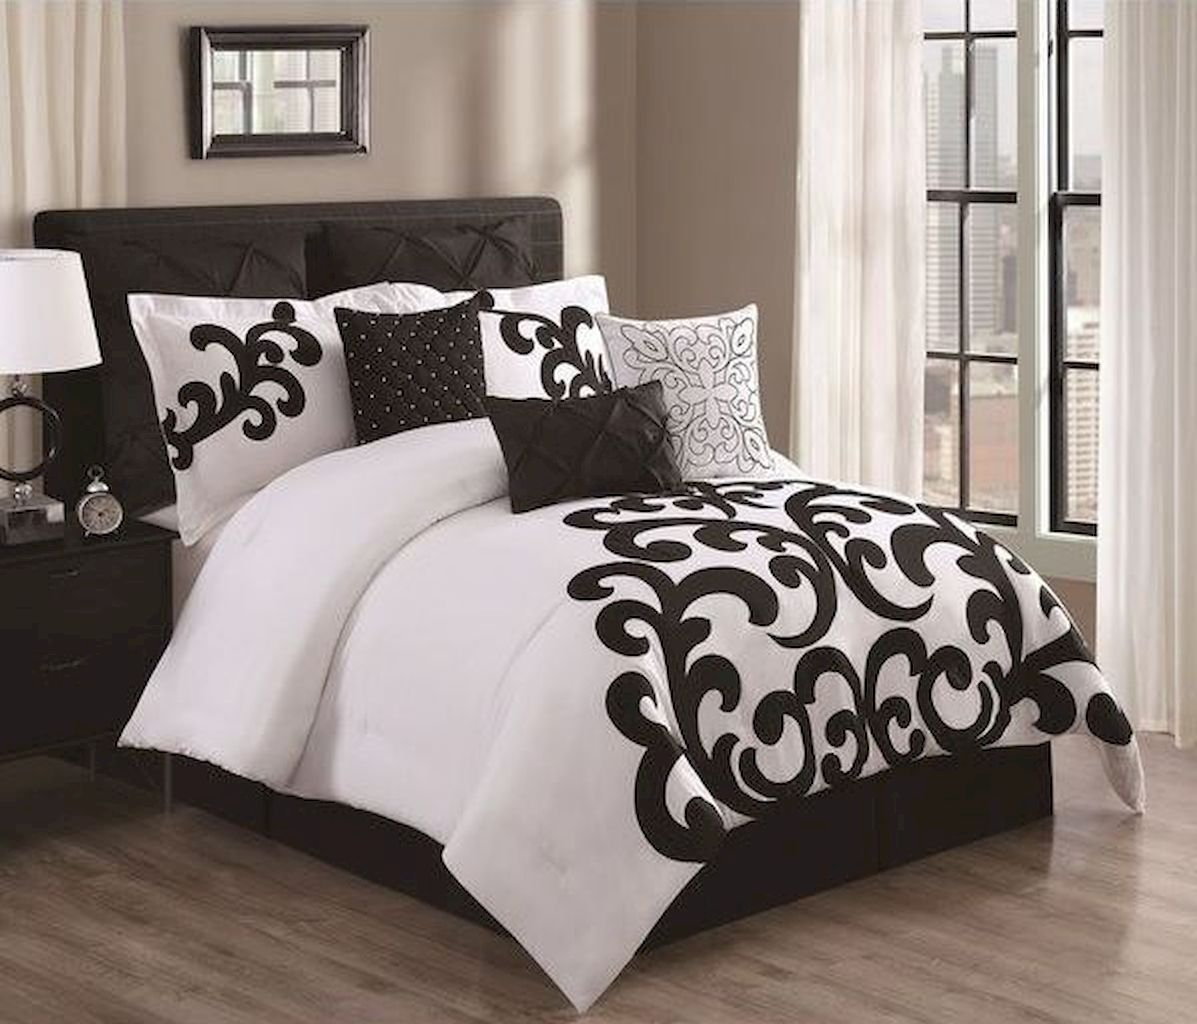 Black And White Bedding Sets For Your Dramatic Bedroom Comforter Sets White Bed Set White Comforter